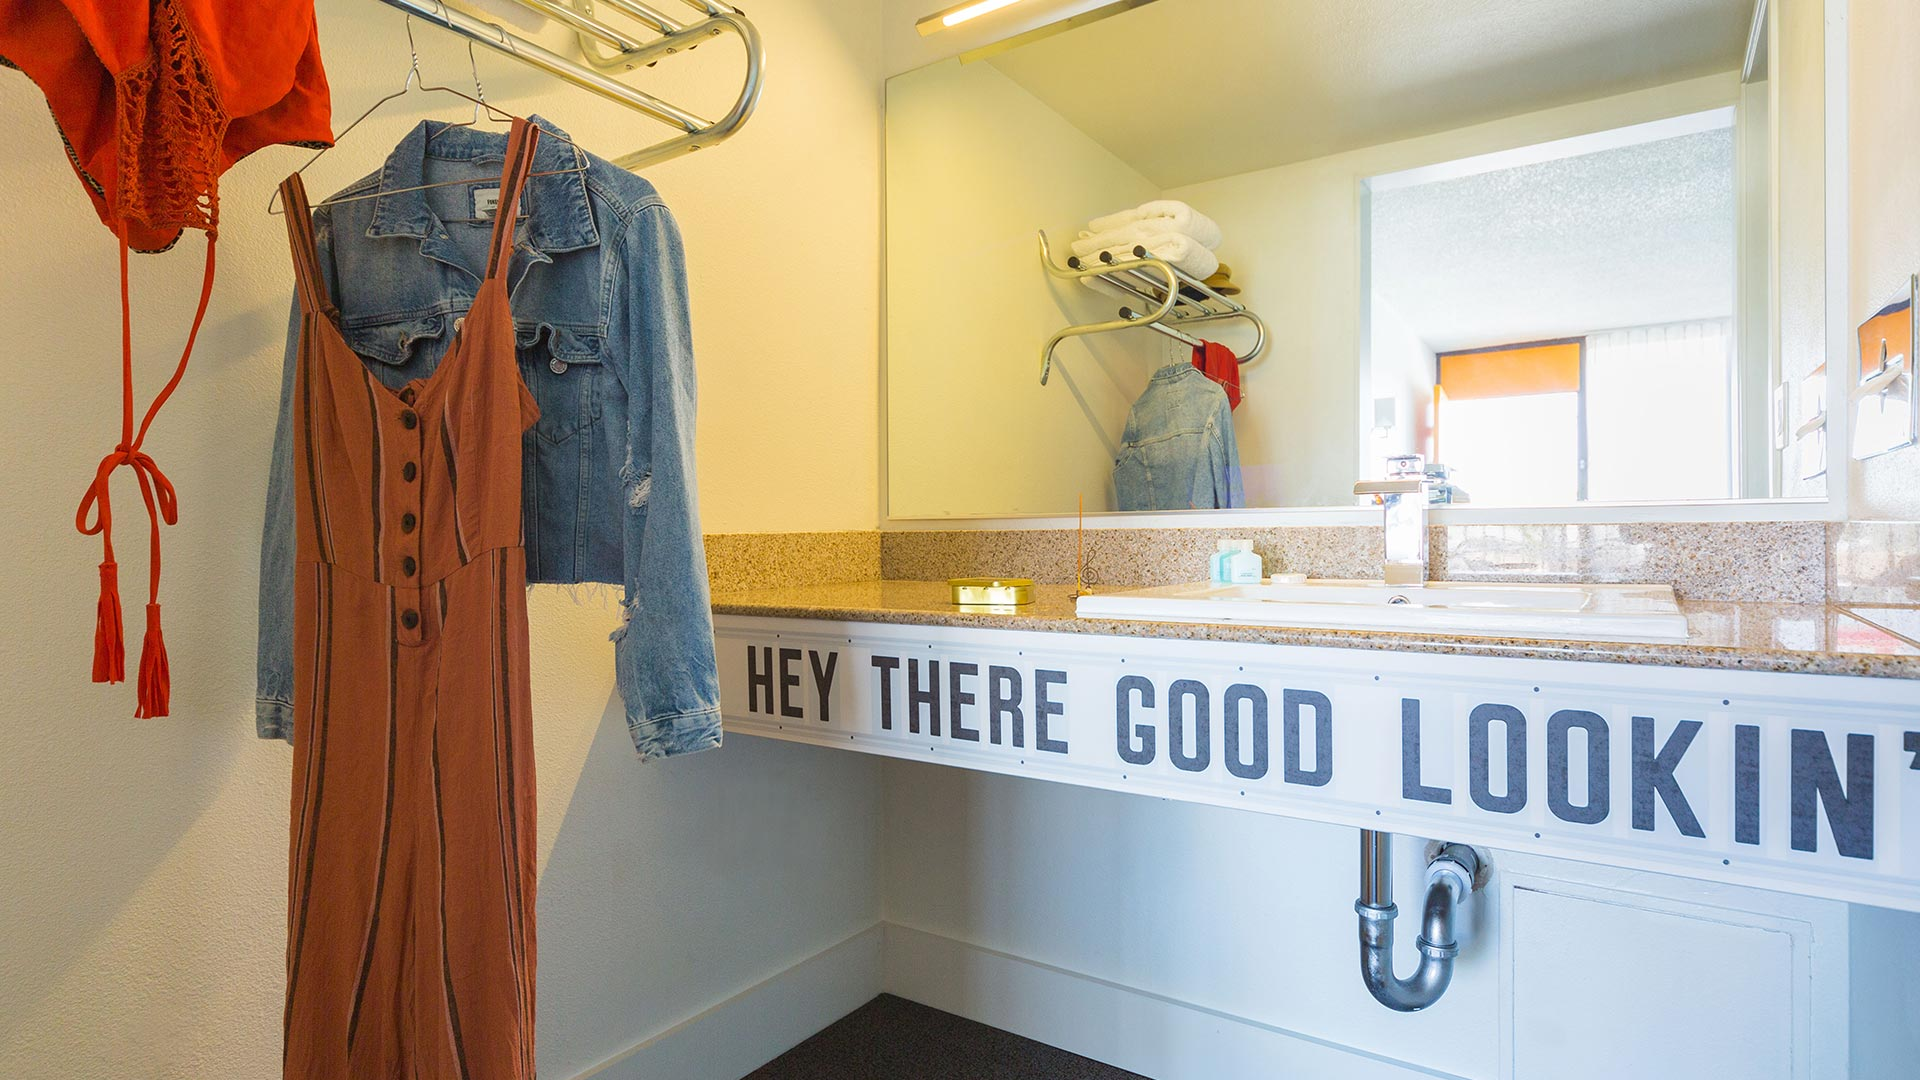 Rambler: view of bathroom sink with text Hey There Good Looking on it, clothes hanging on rack